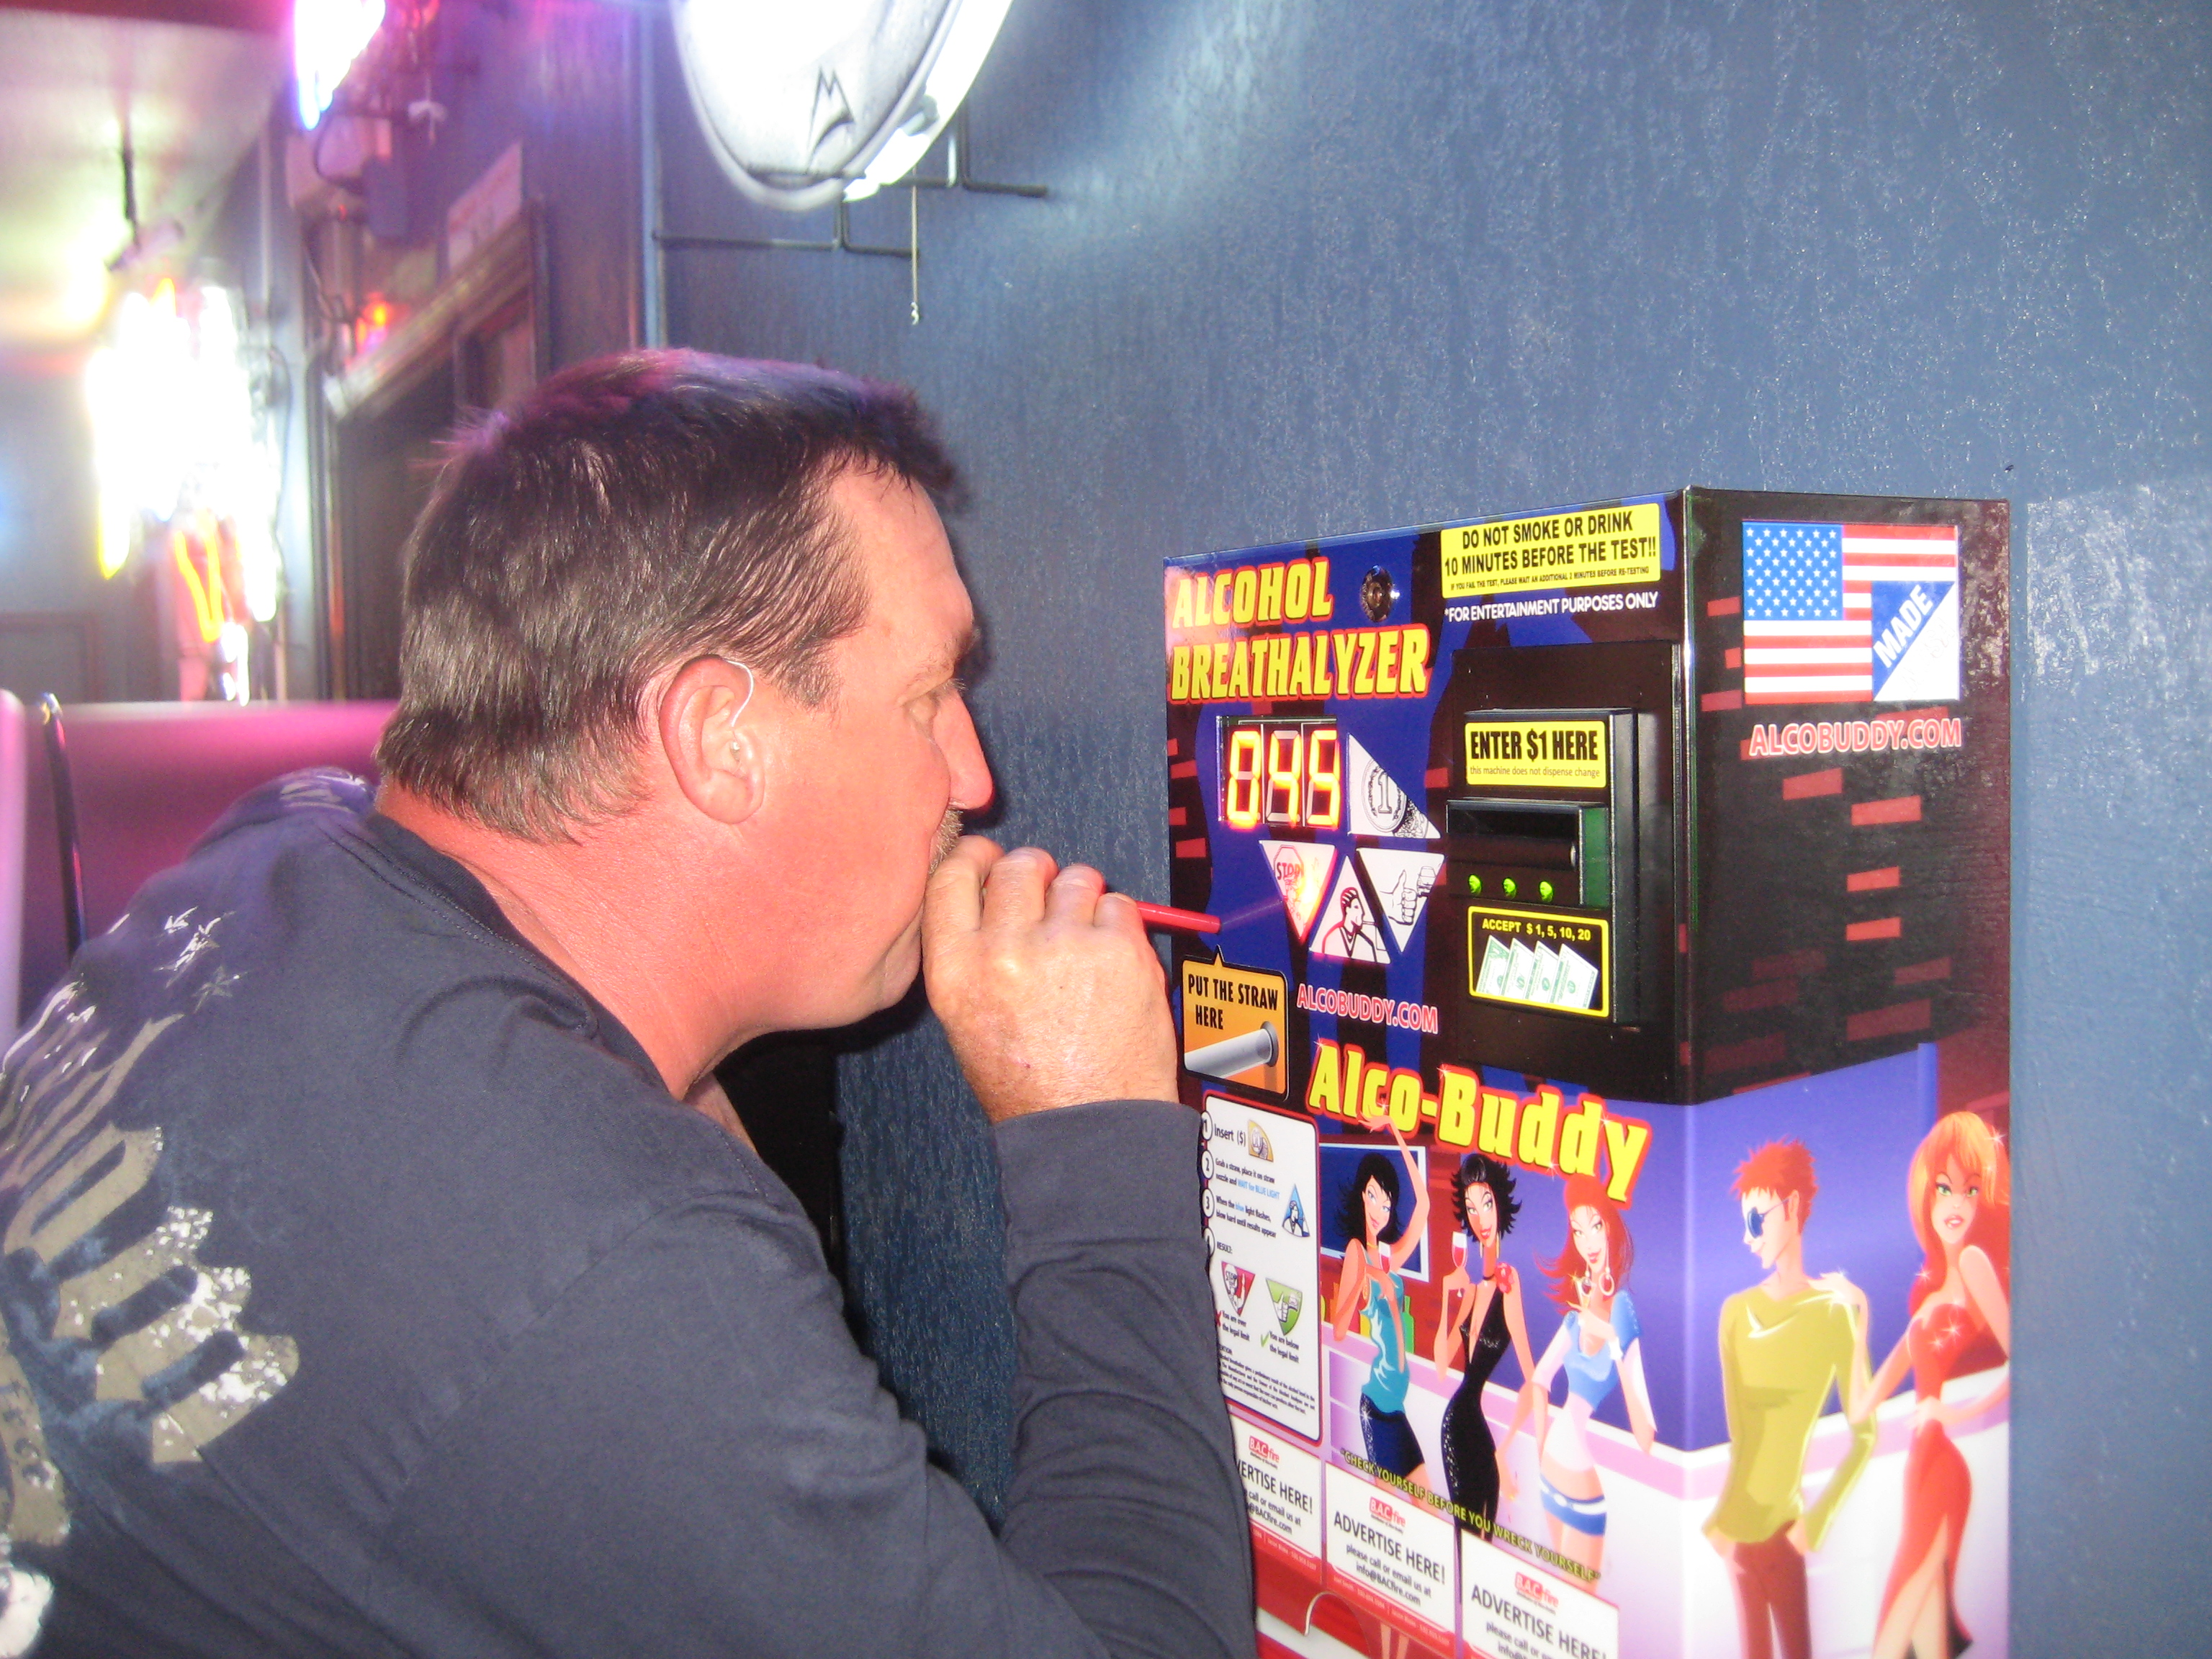 For 1 Bar Breathalyzers Offer Fresh Thinking Or Just